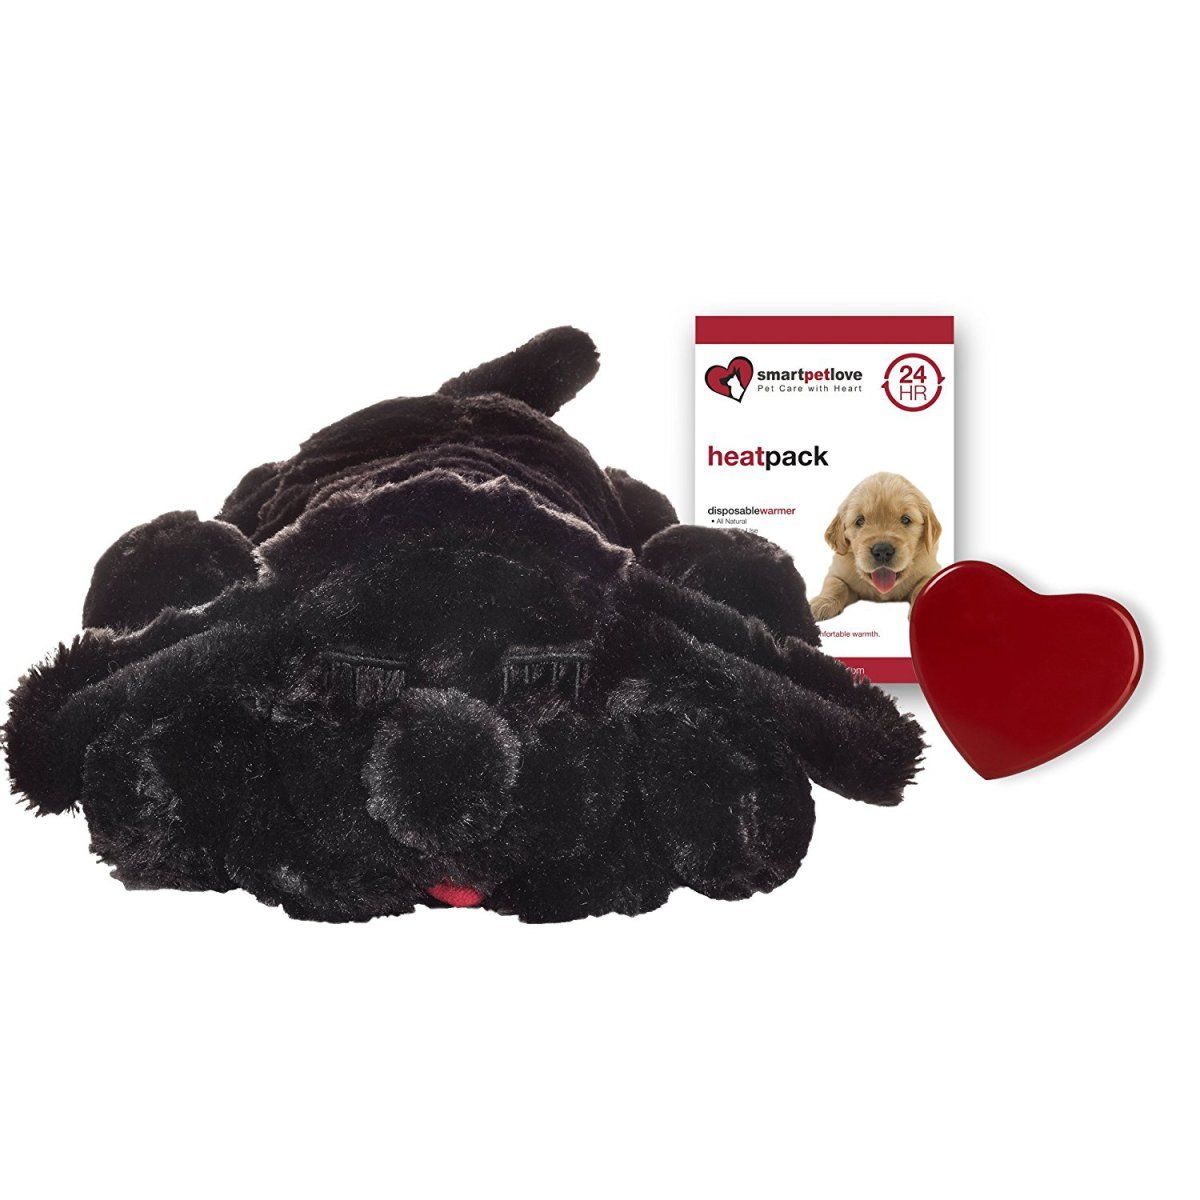 If you are getting a new puppy. This is something you need for the very first night you bring puppy home. I didn't have one at first and wish that I had known about this sooner. Snuggle Puppy…